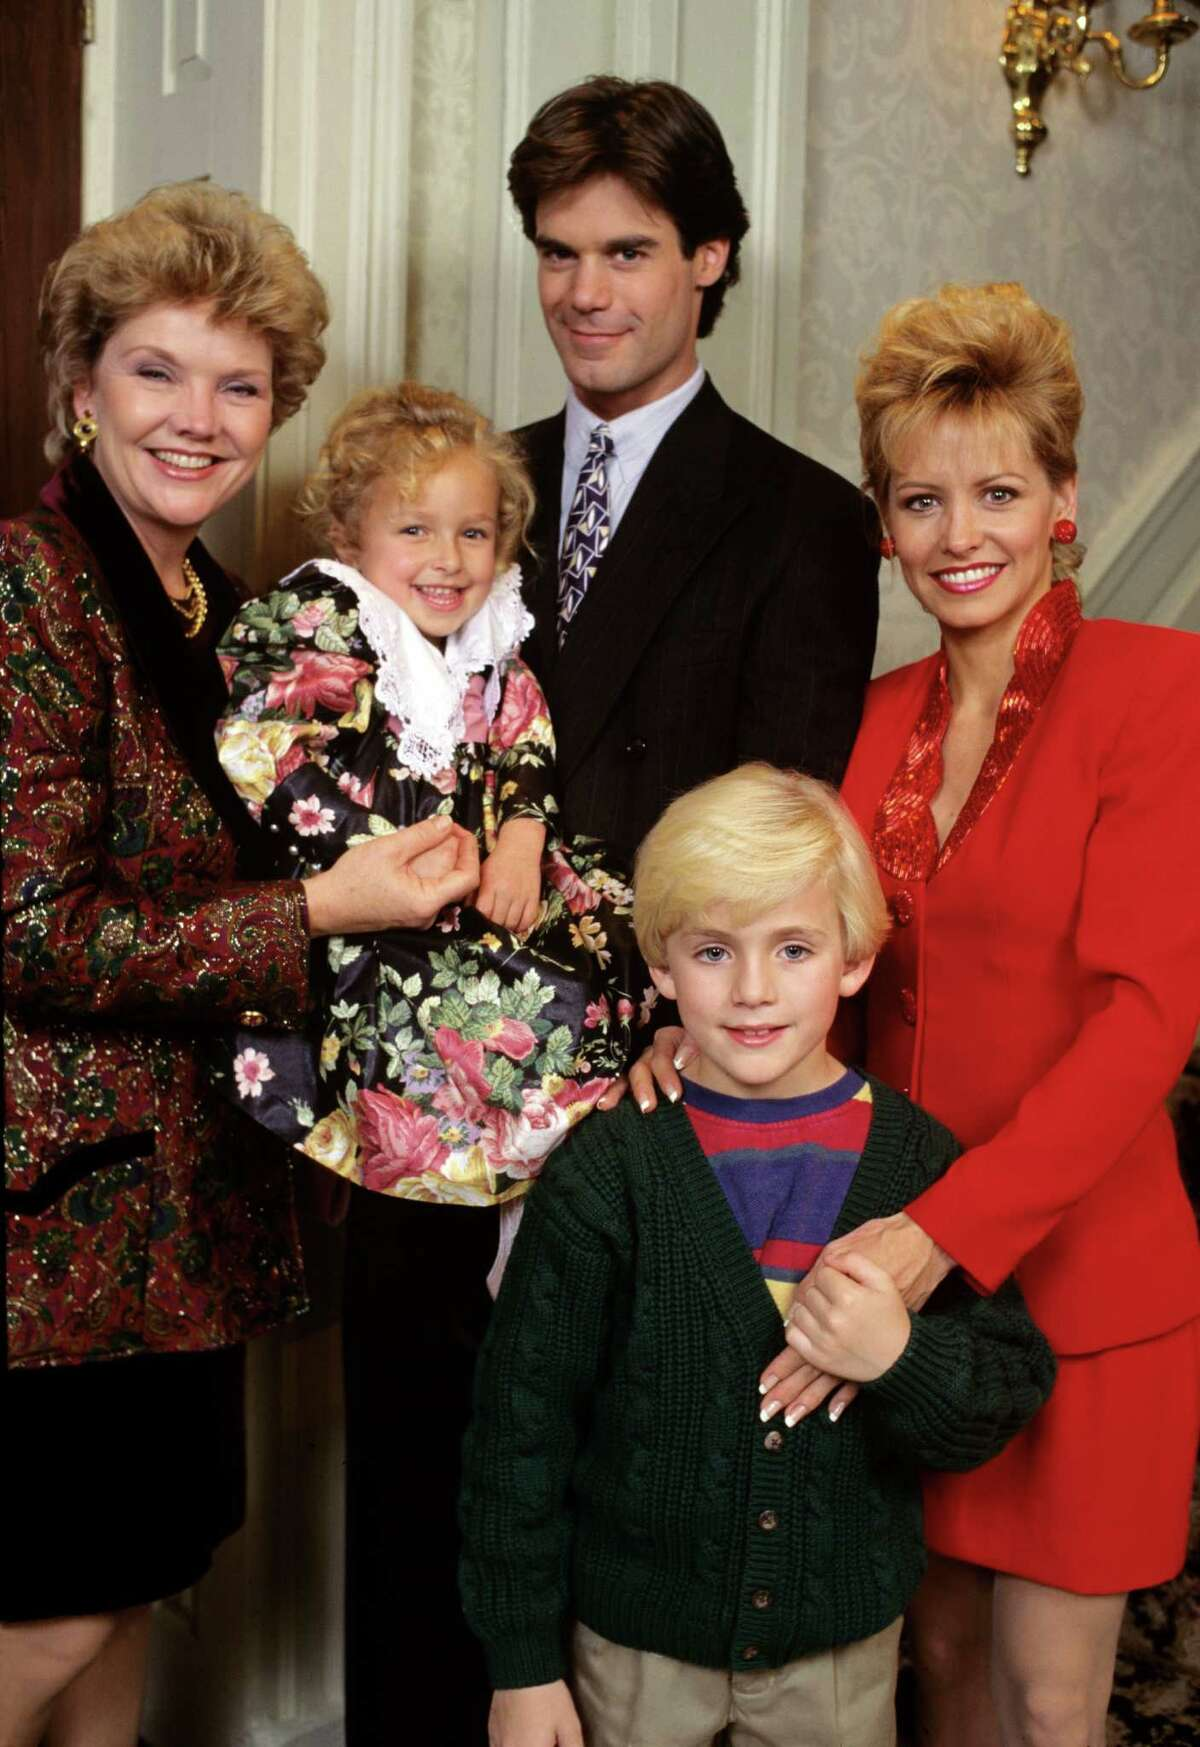 Here is a young Hayden Panettiere as the little girl (Sarah) on ABC Daytime's